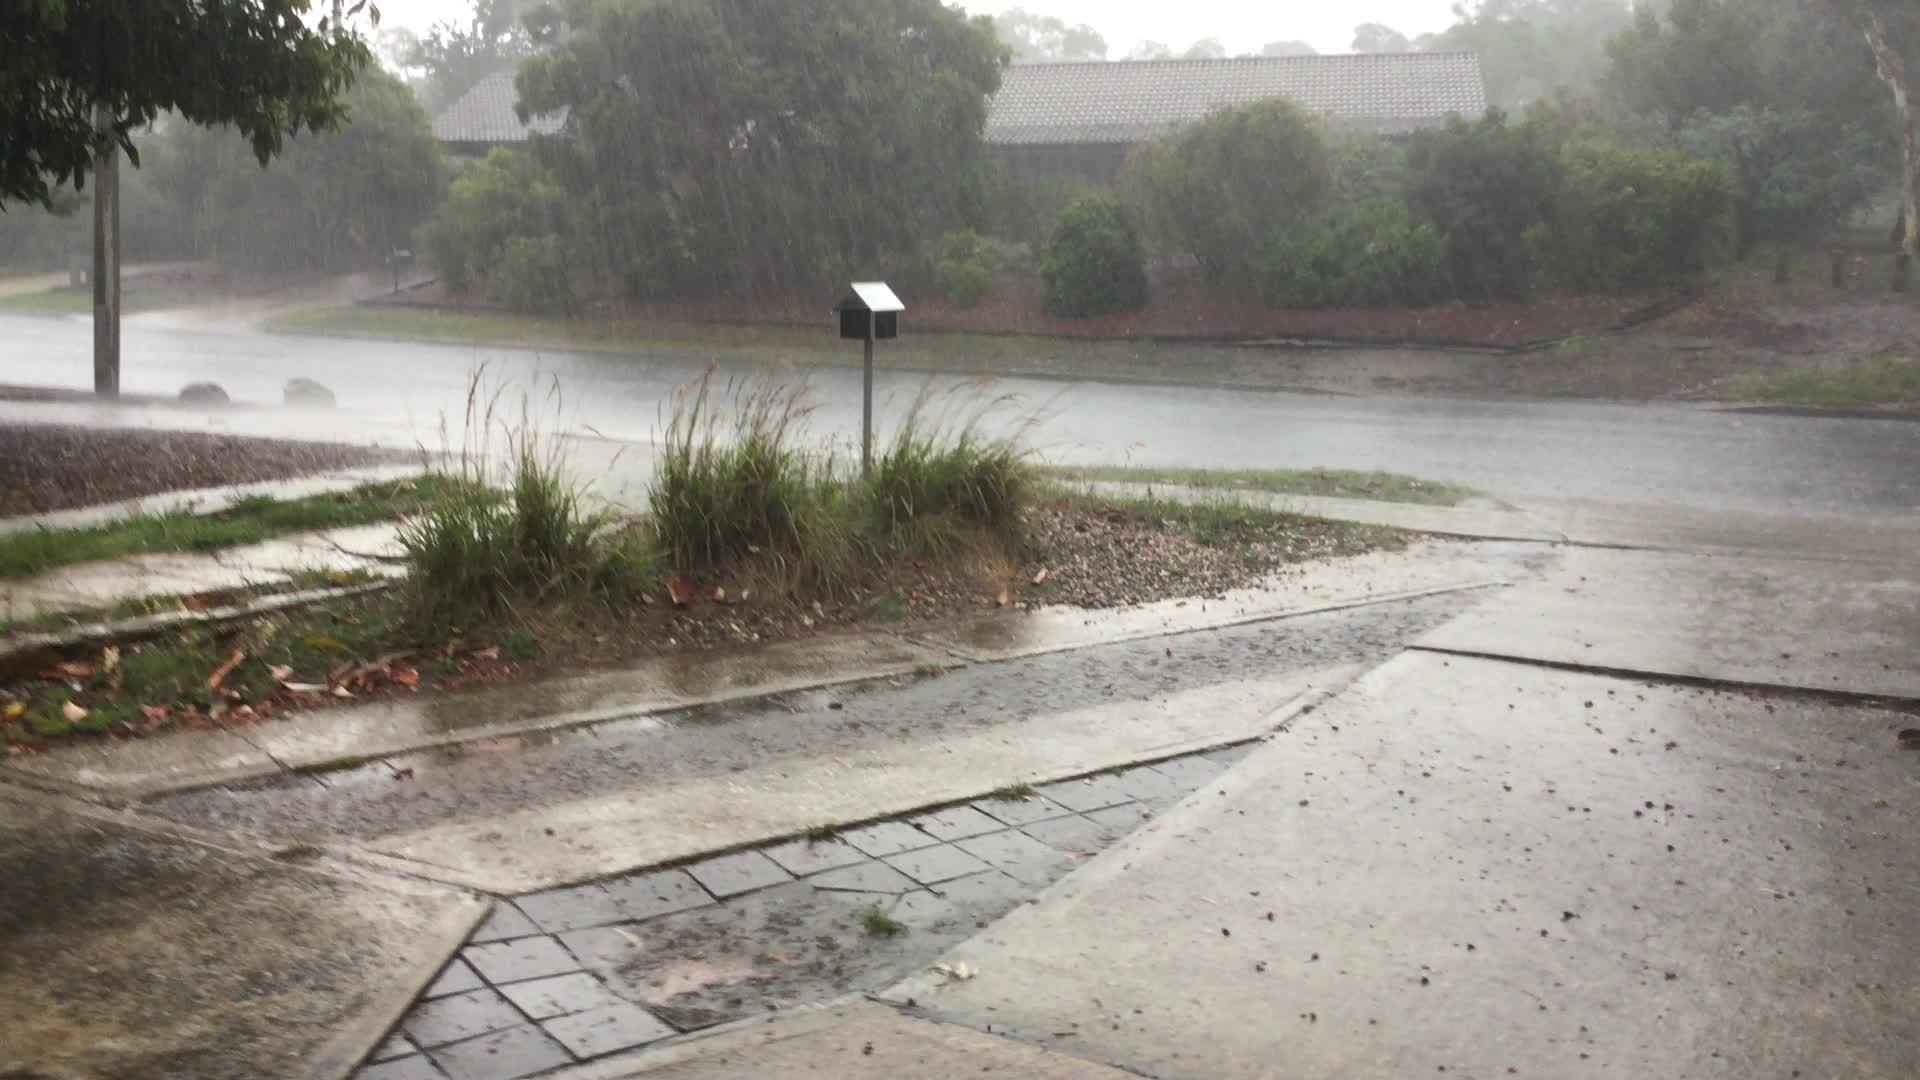 Bit wet here in Canberra GIFs